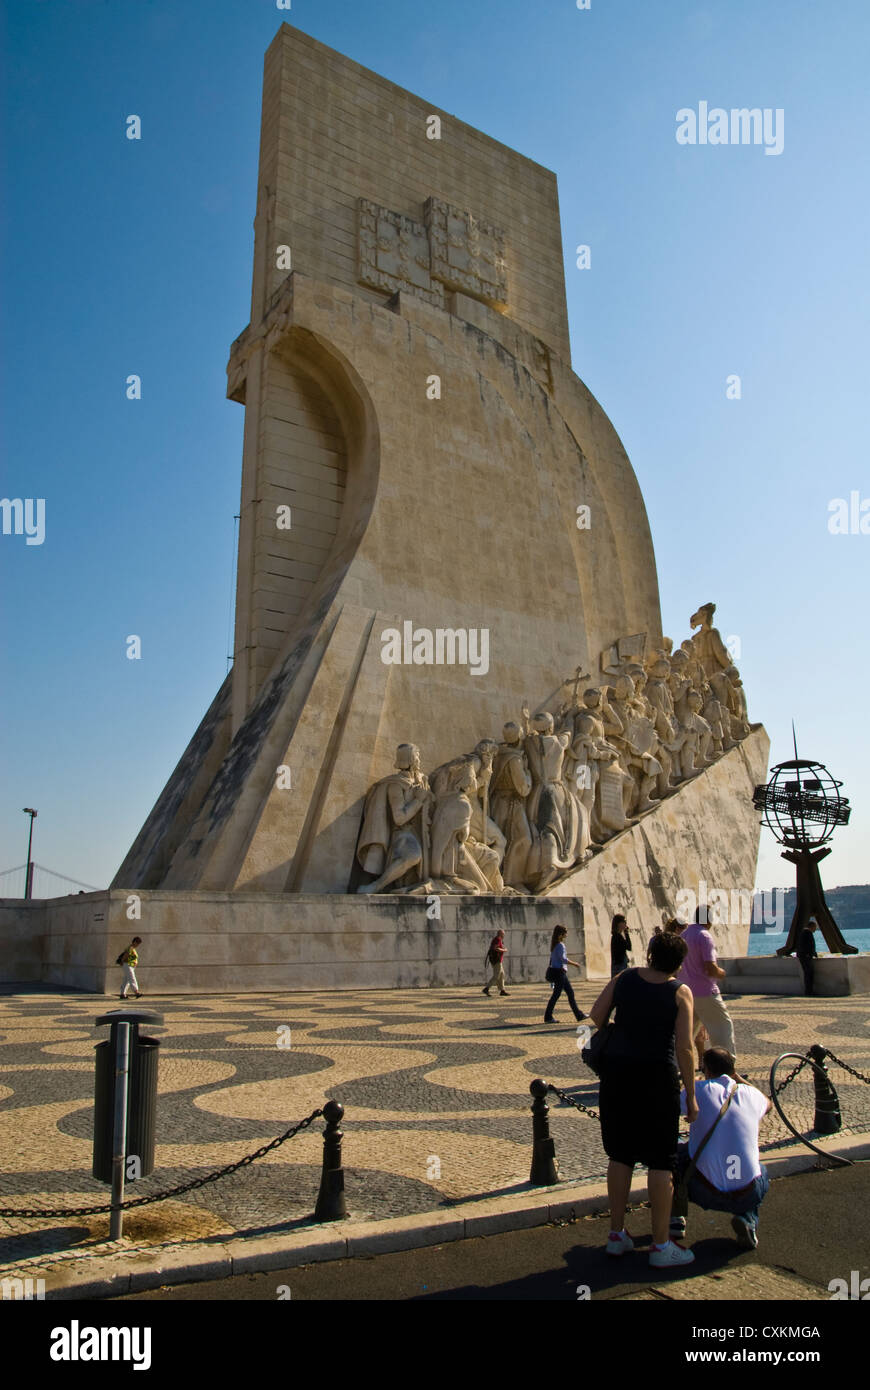 Monument to discoveries belem lisbon portugal europe - Stock Image